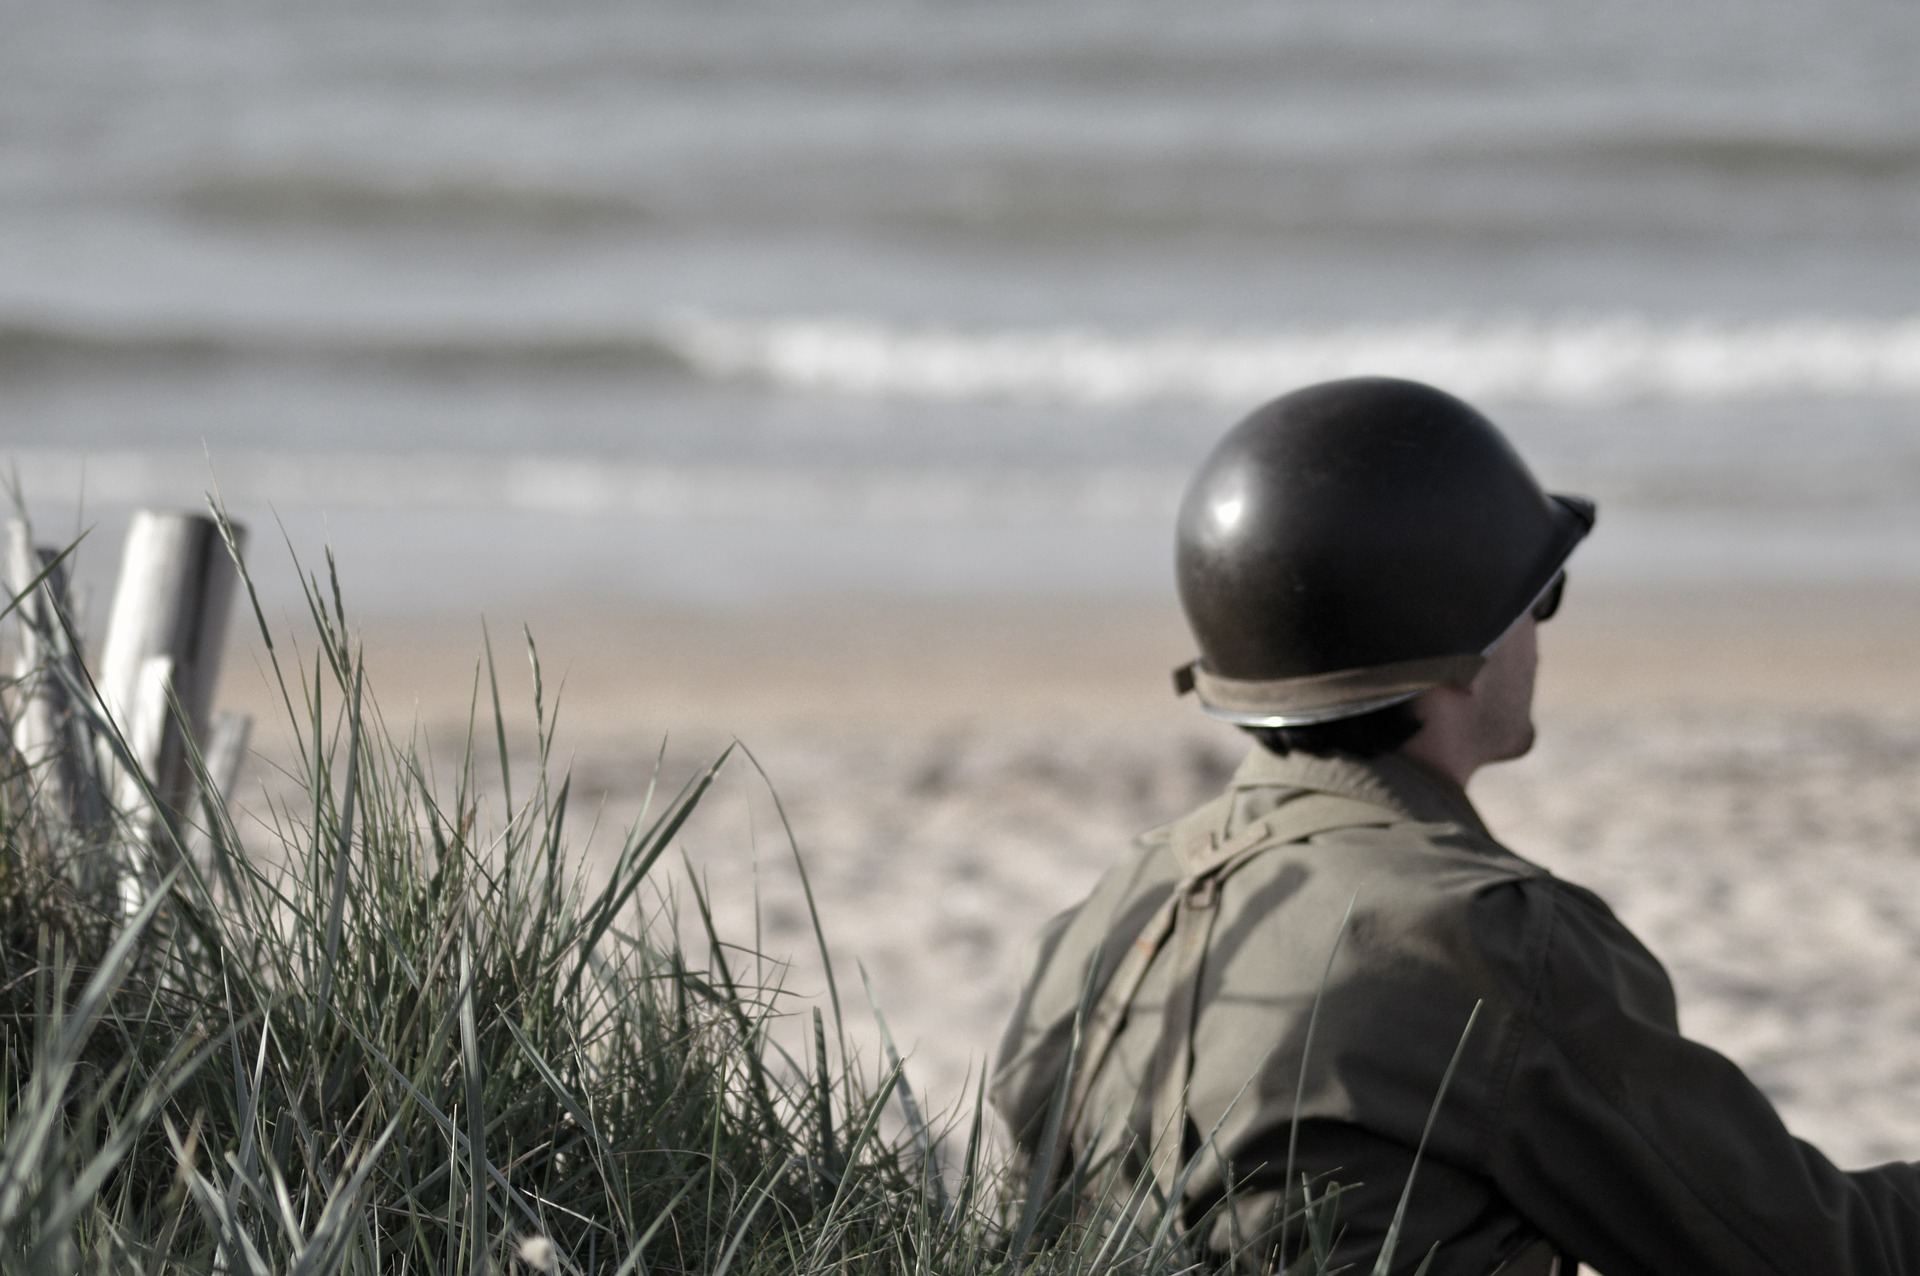 d day beaches, normandy